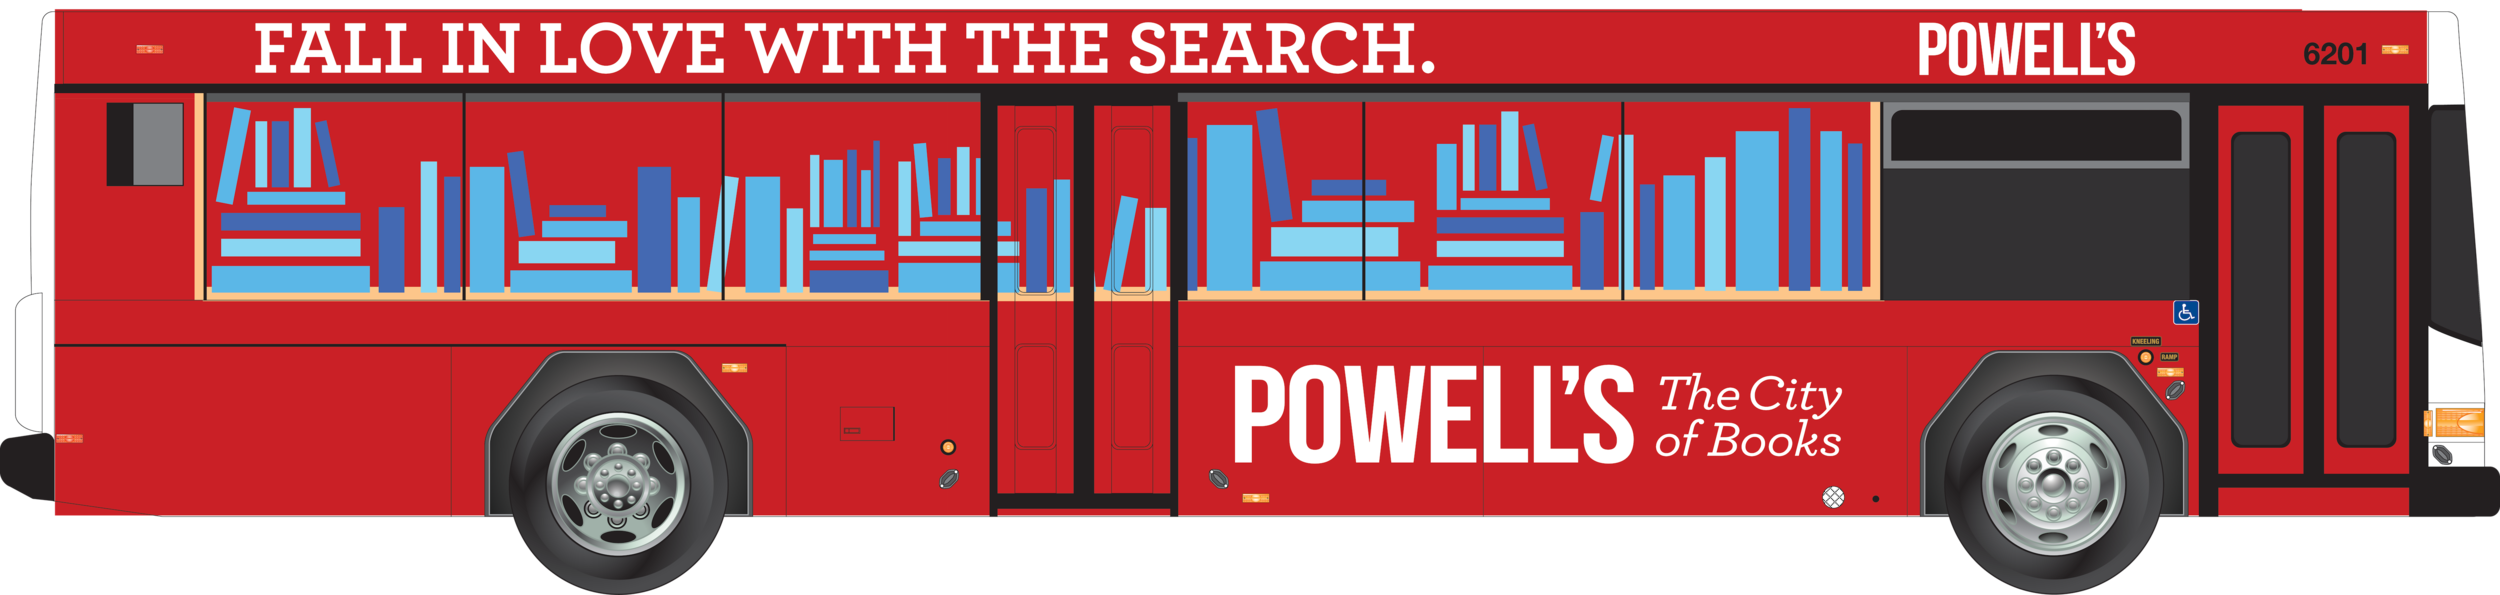 Powell's Bus Wrap 1.png